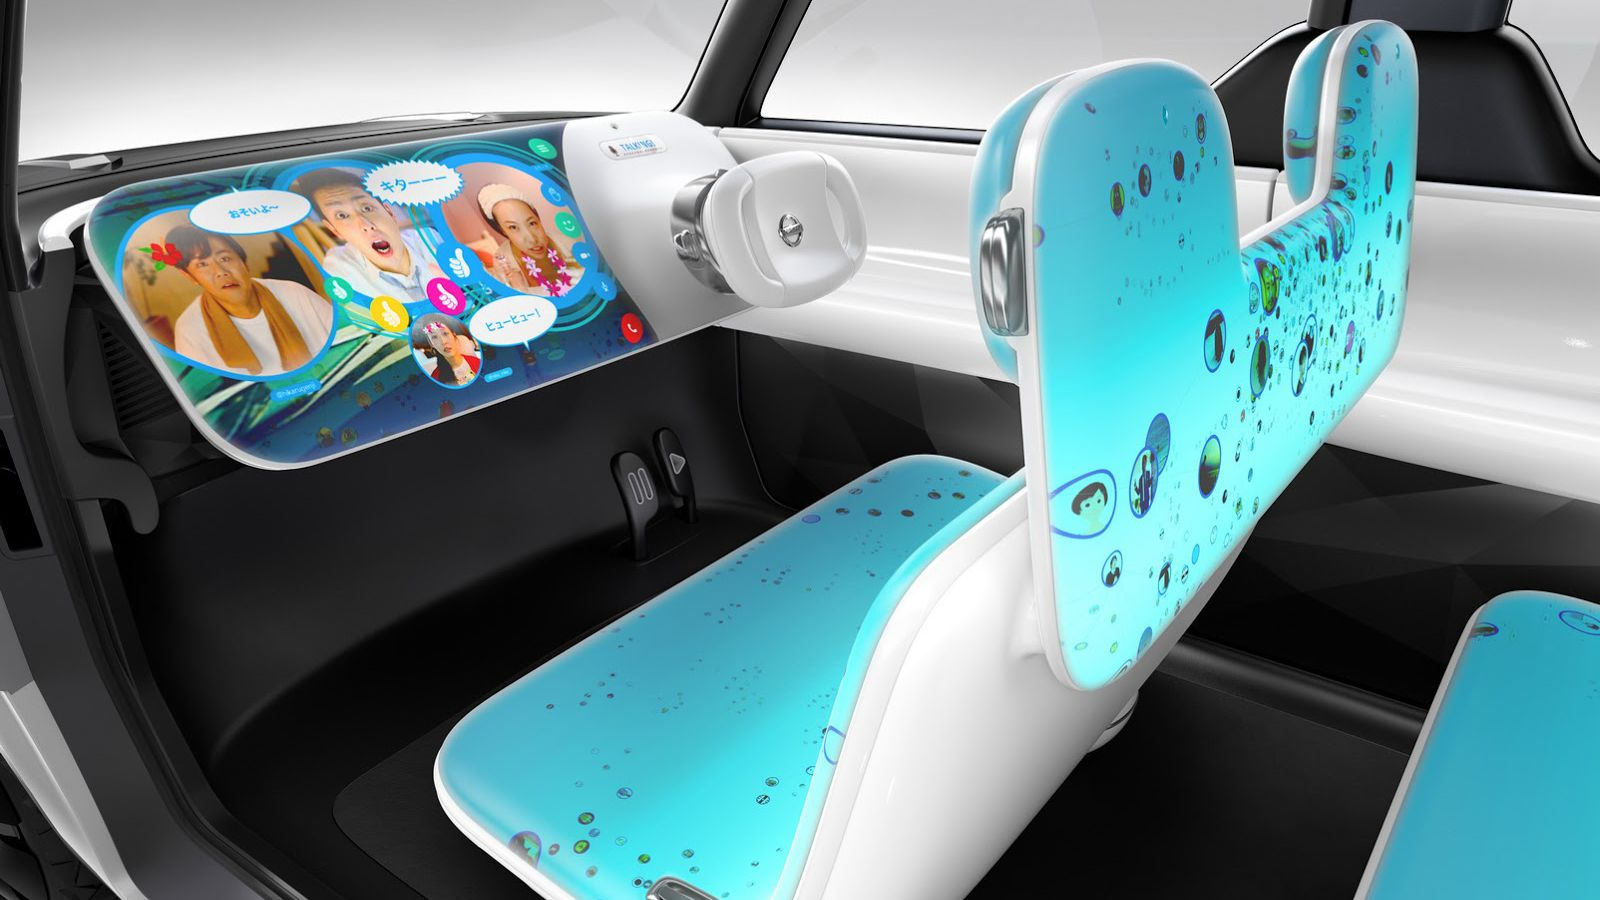 Nissan's Teatro for Dayz concept is a ridiculous car made out of screens